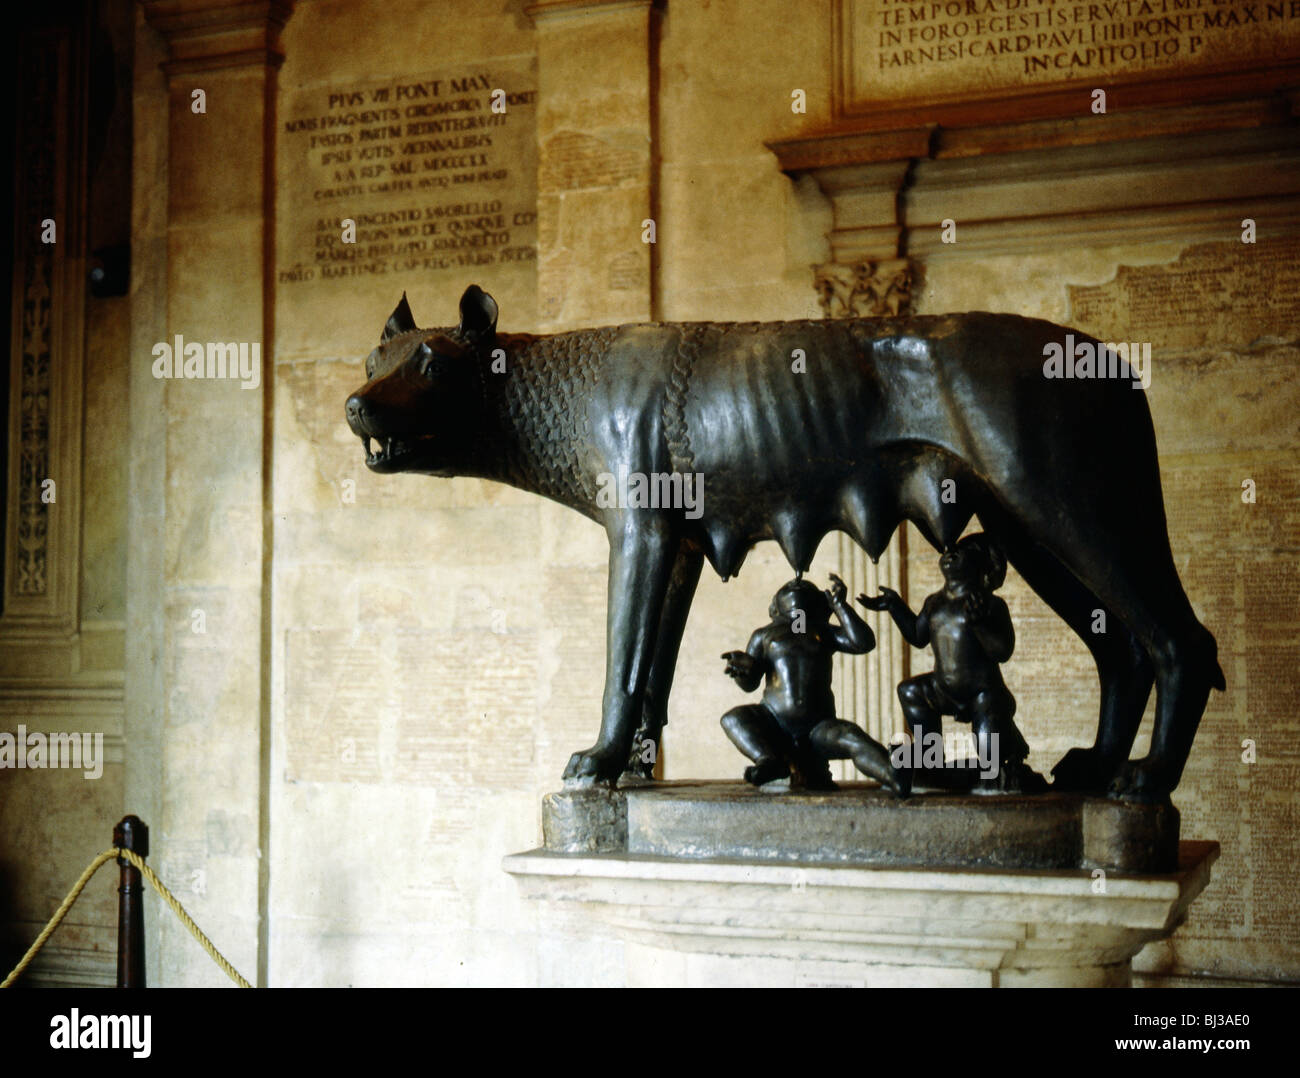 Bronze statue of the she-wolf of Rome, 5th century BC. Artist: Werner Forman - Stock Image